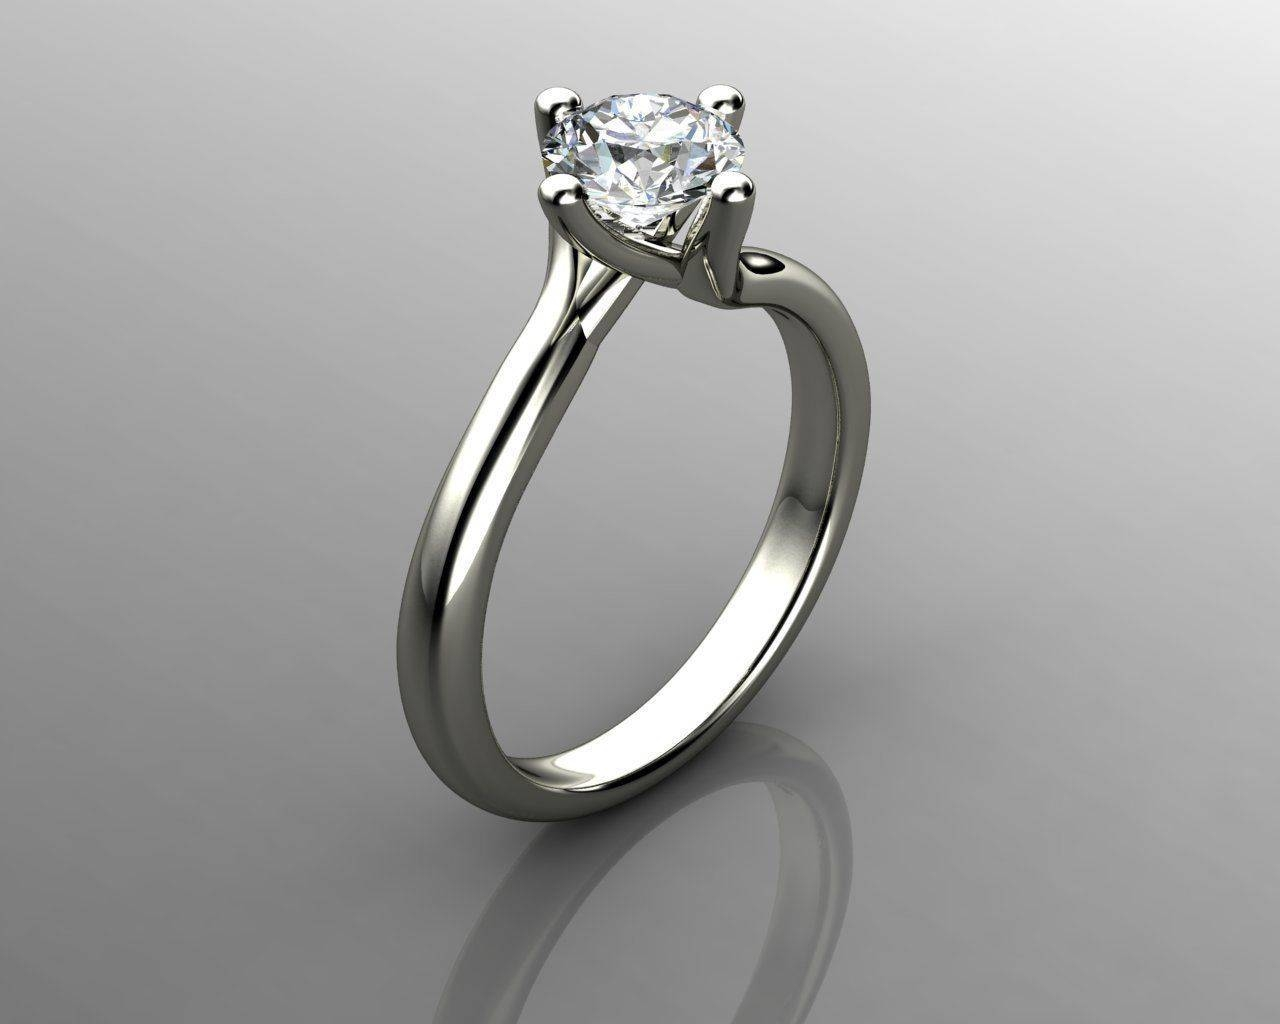 3D Print Model Solitaire Diamond Engagement Rings With Solitare Diamond Engagement Rings (View 1 of 15)